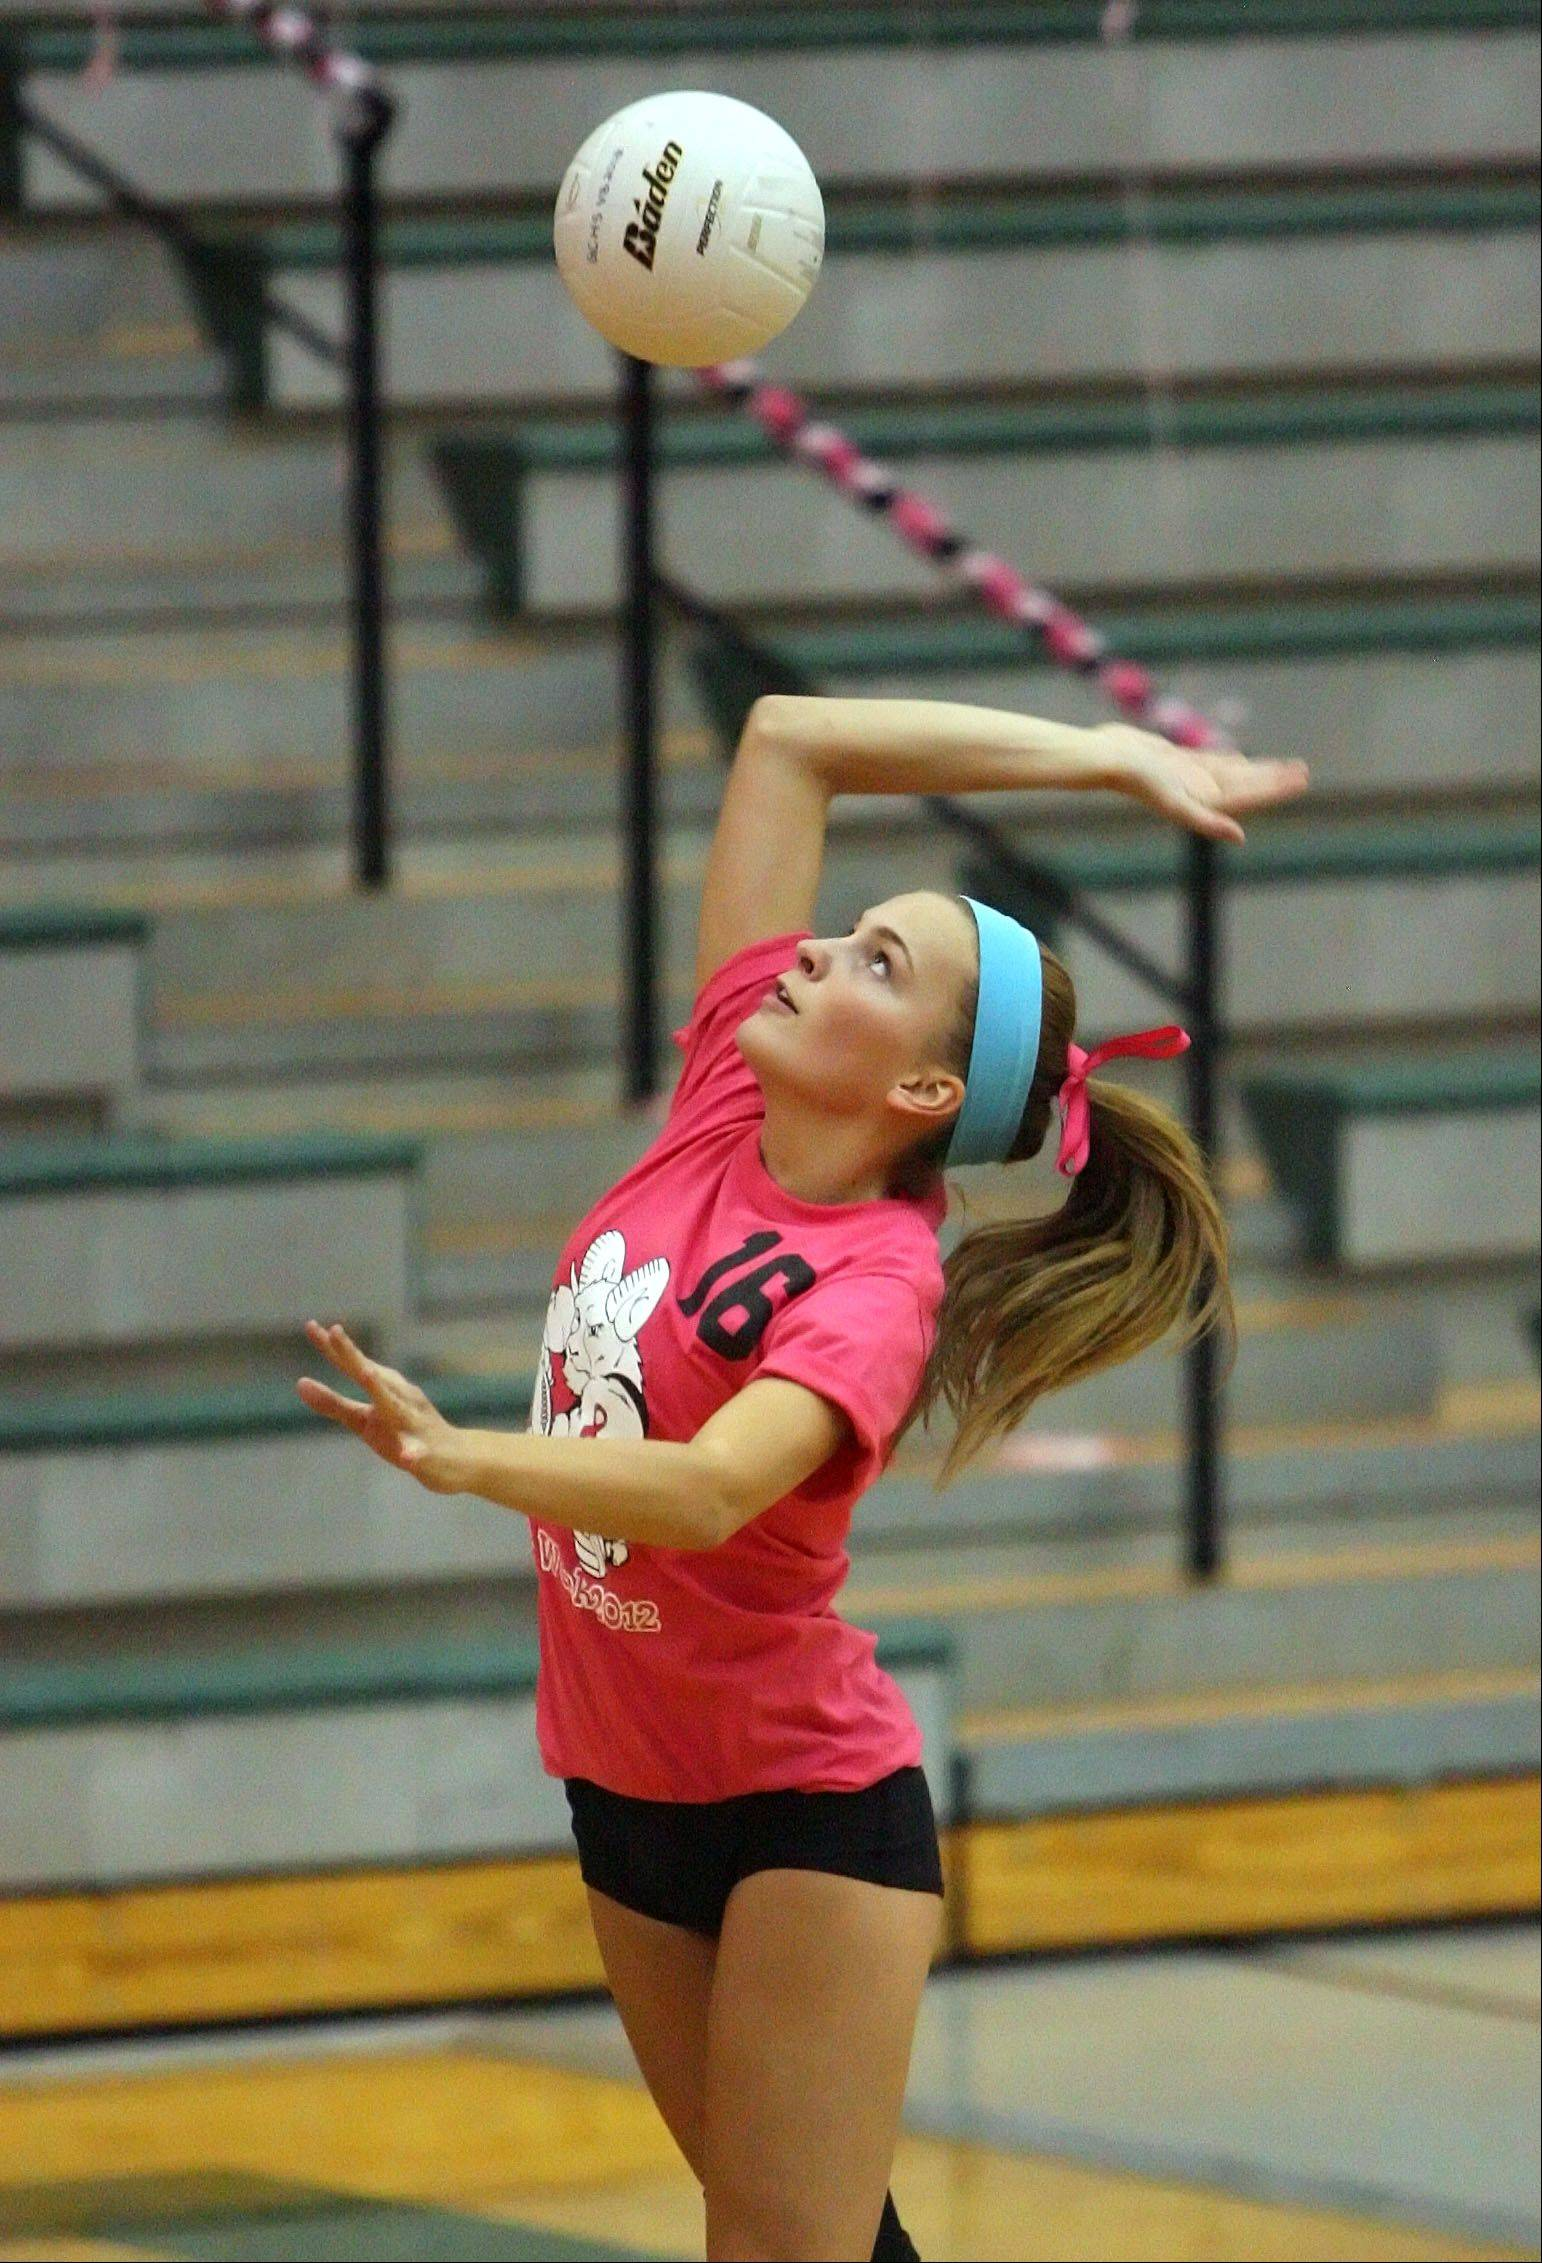 Grayslake Central's Meghan Brewster serves against Woodstock on Tuesday at Grayslake Central.